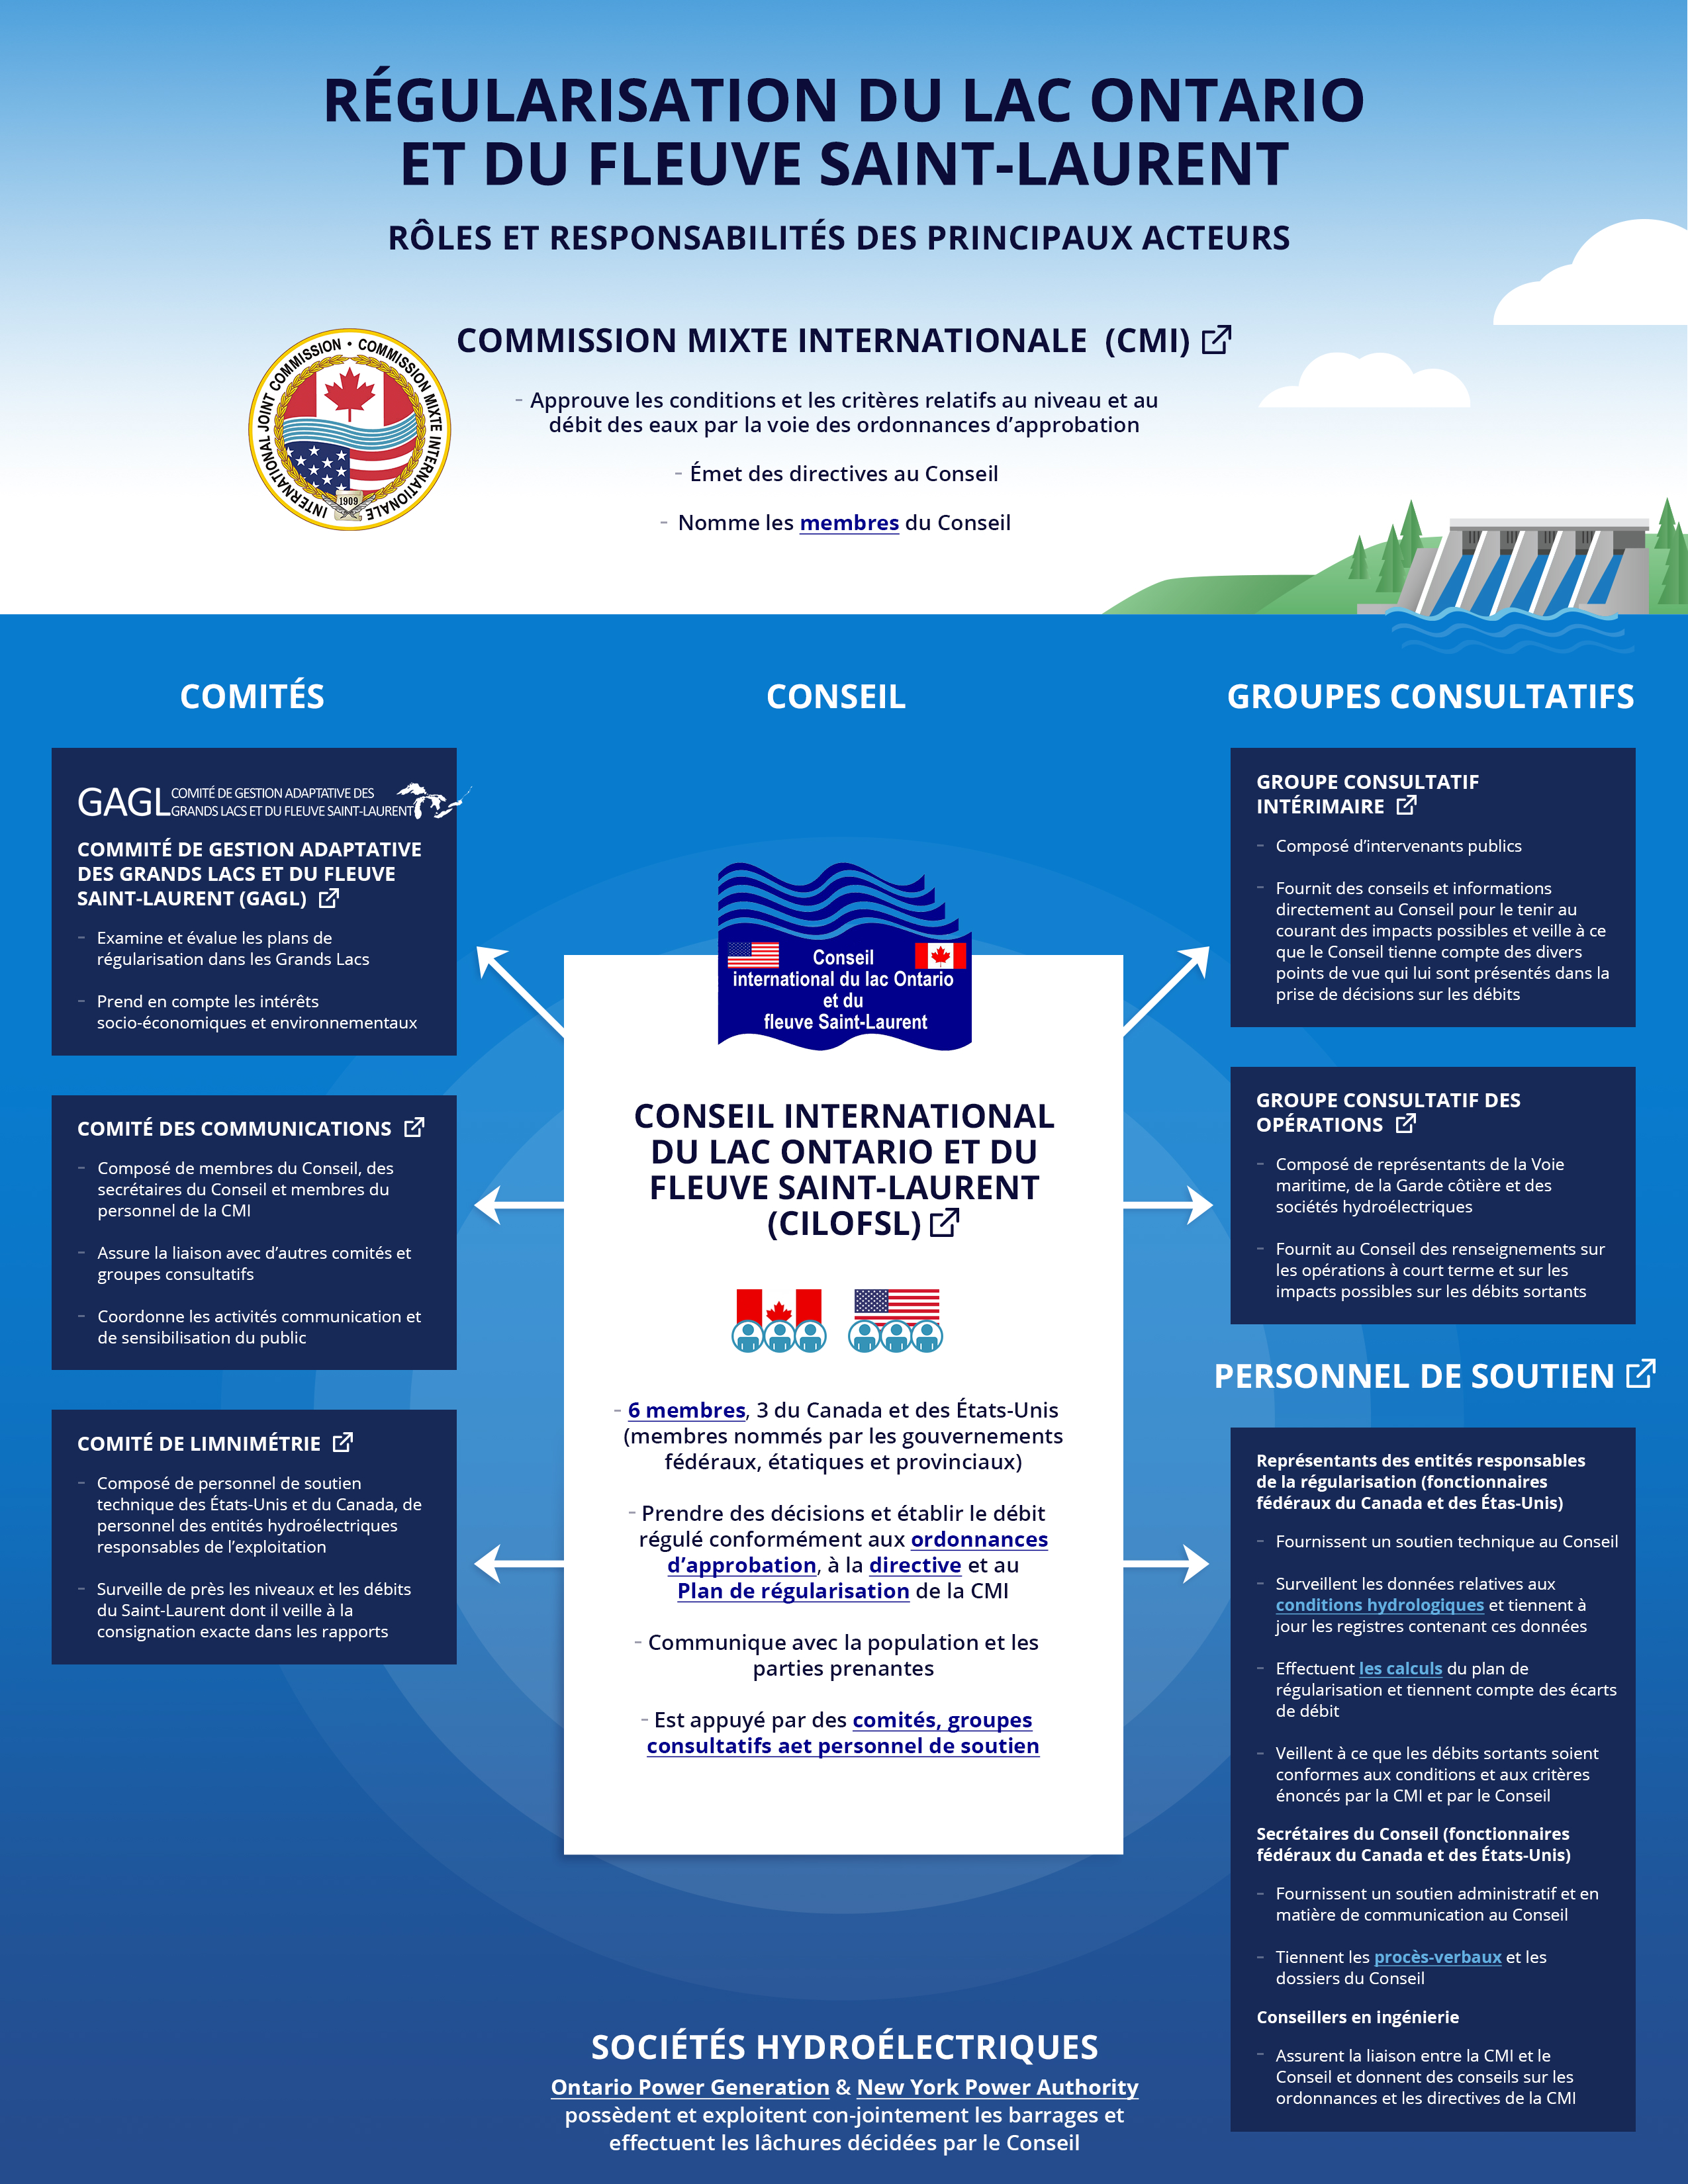 IJC-ILOSLRB Roles and Responsibilities Infographic - FR